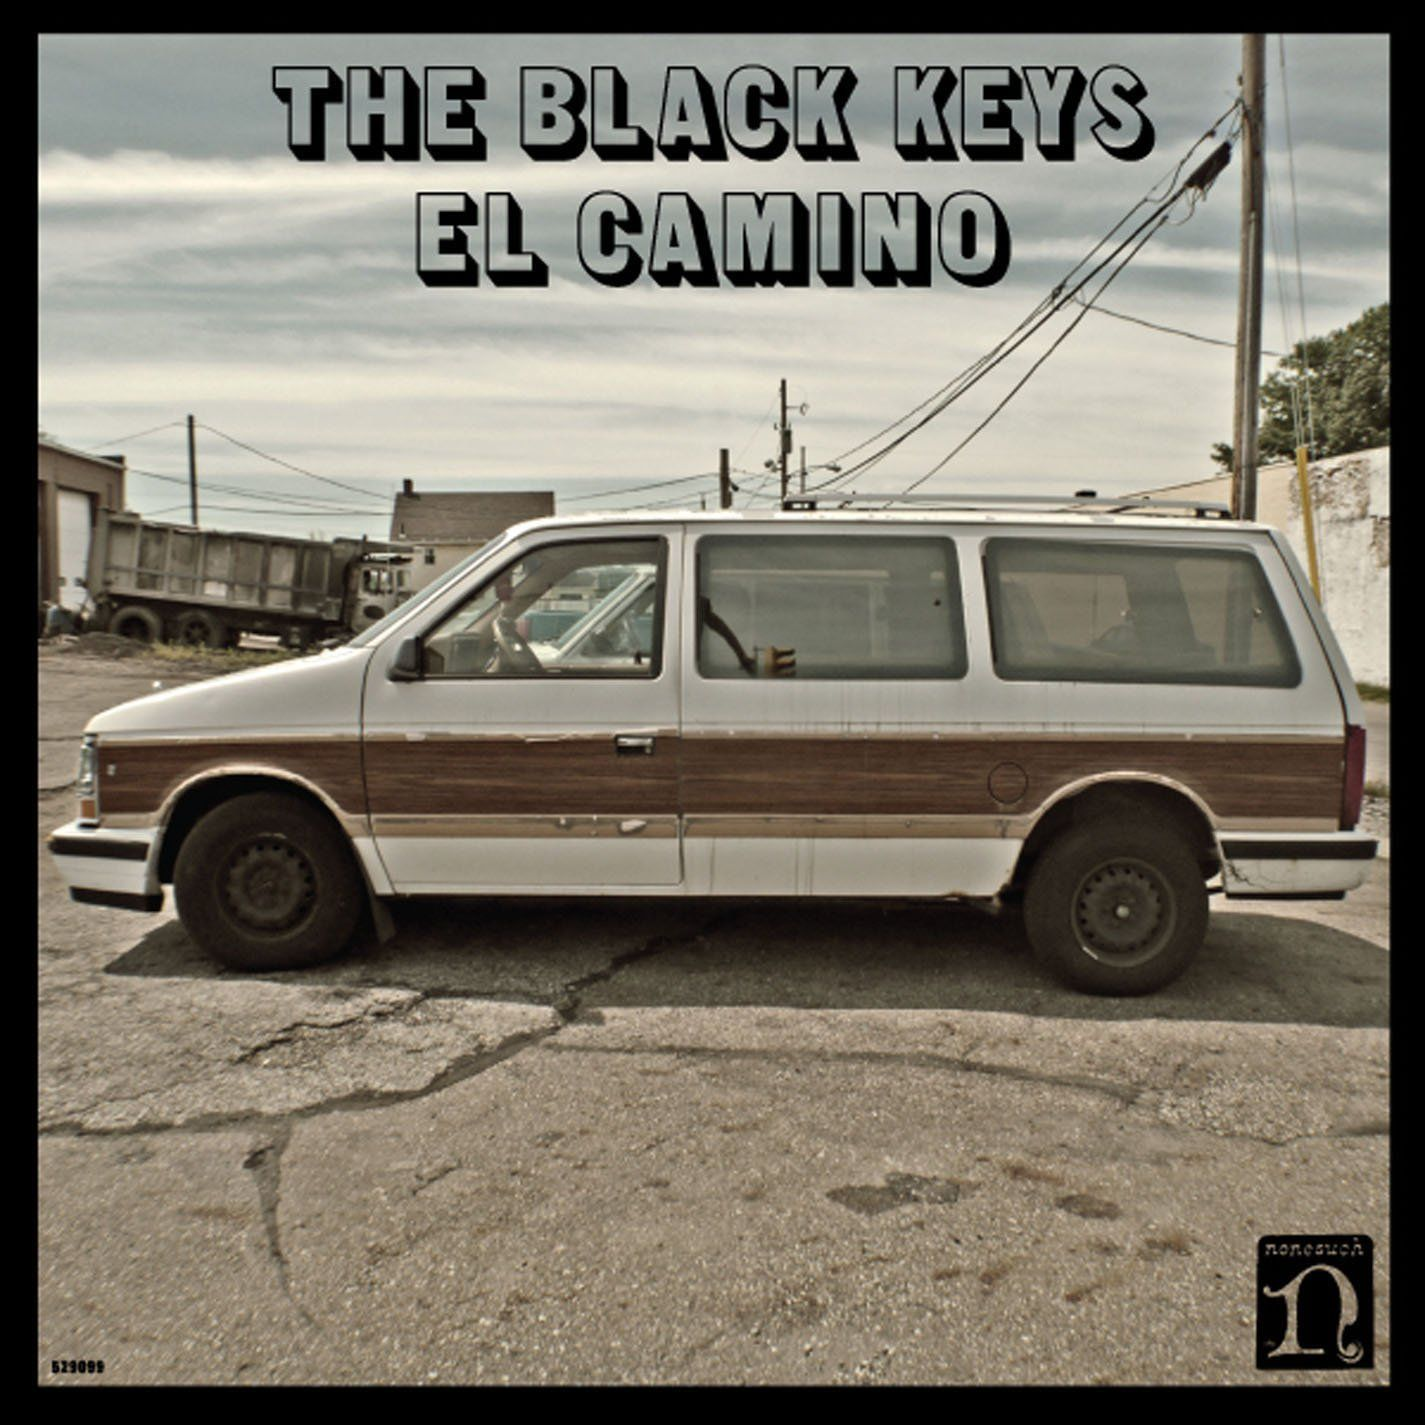 Bilderesultat for the black keys el camino